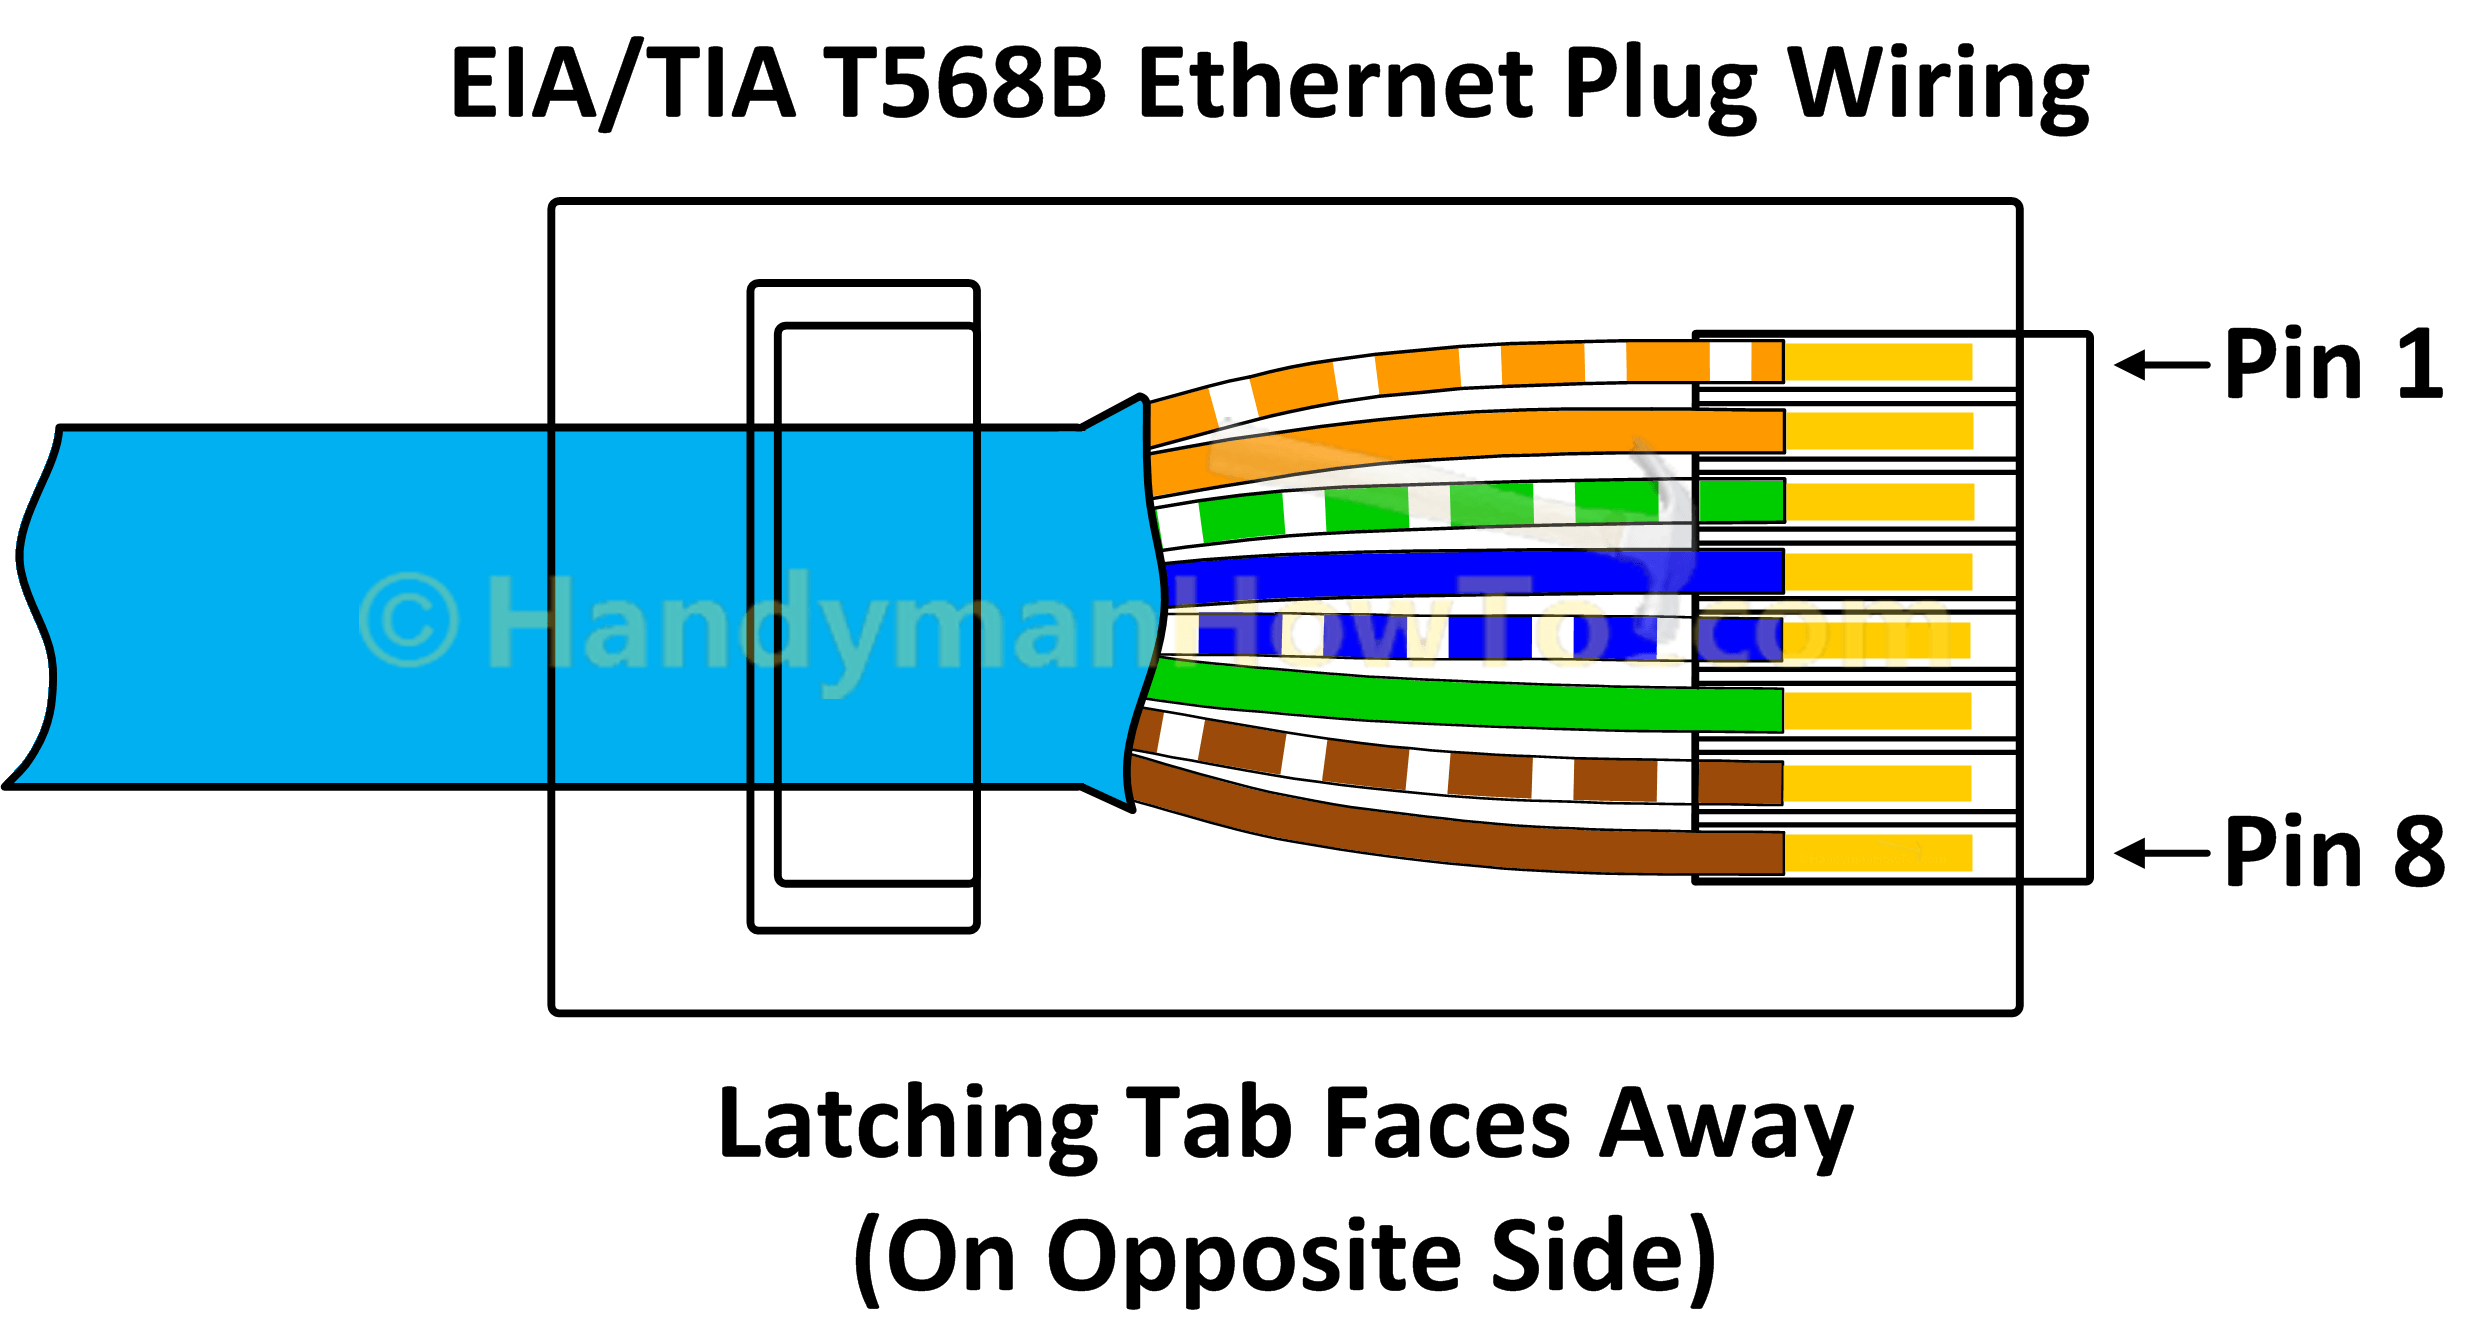 How To Wire A Cat6 Rj45 Ethernet Plug - Handymanhowto - Wiring A Plug Diagram